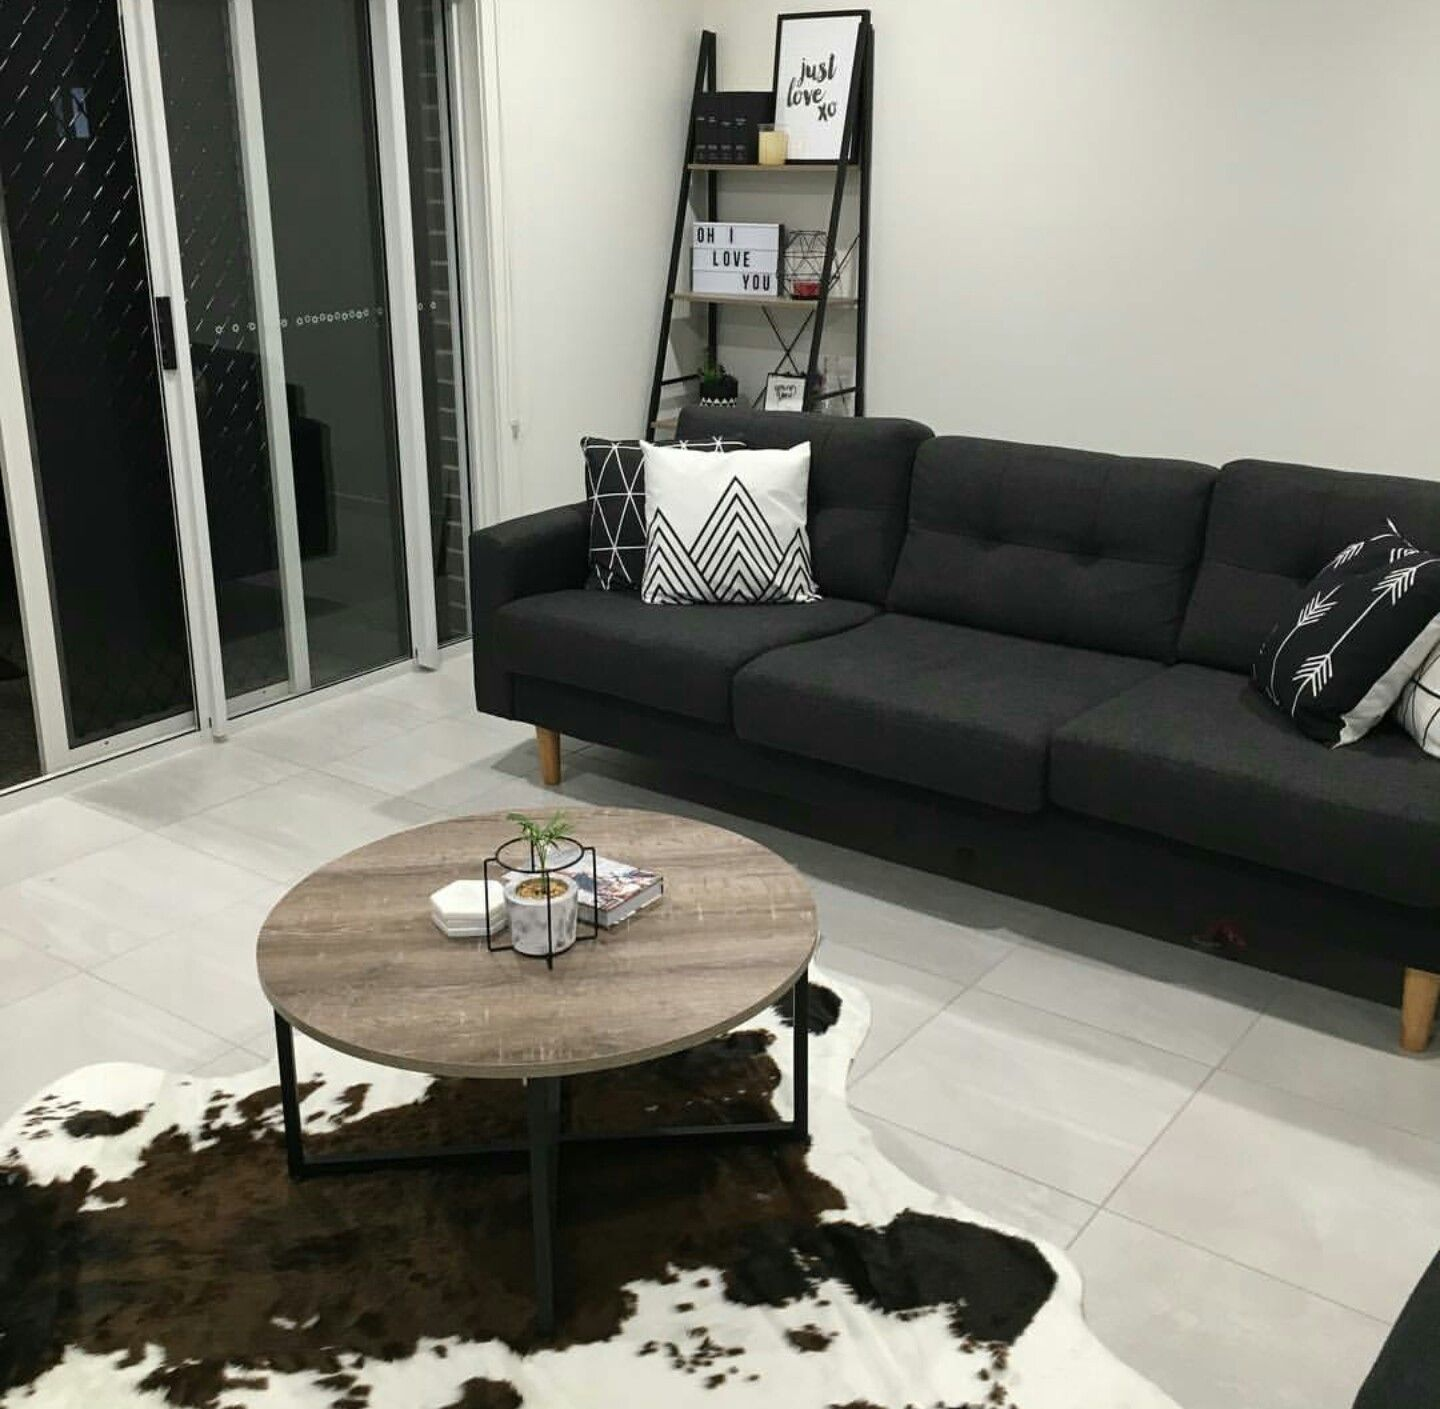 Pin by anastasia on kmart inspired pinterest living rooms room